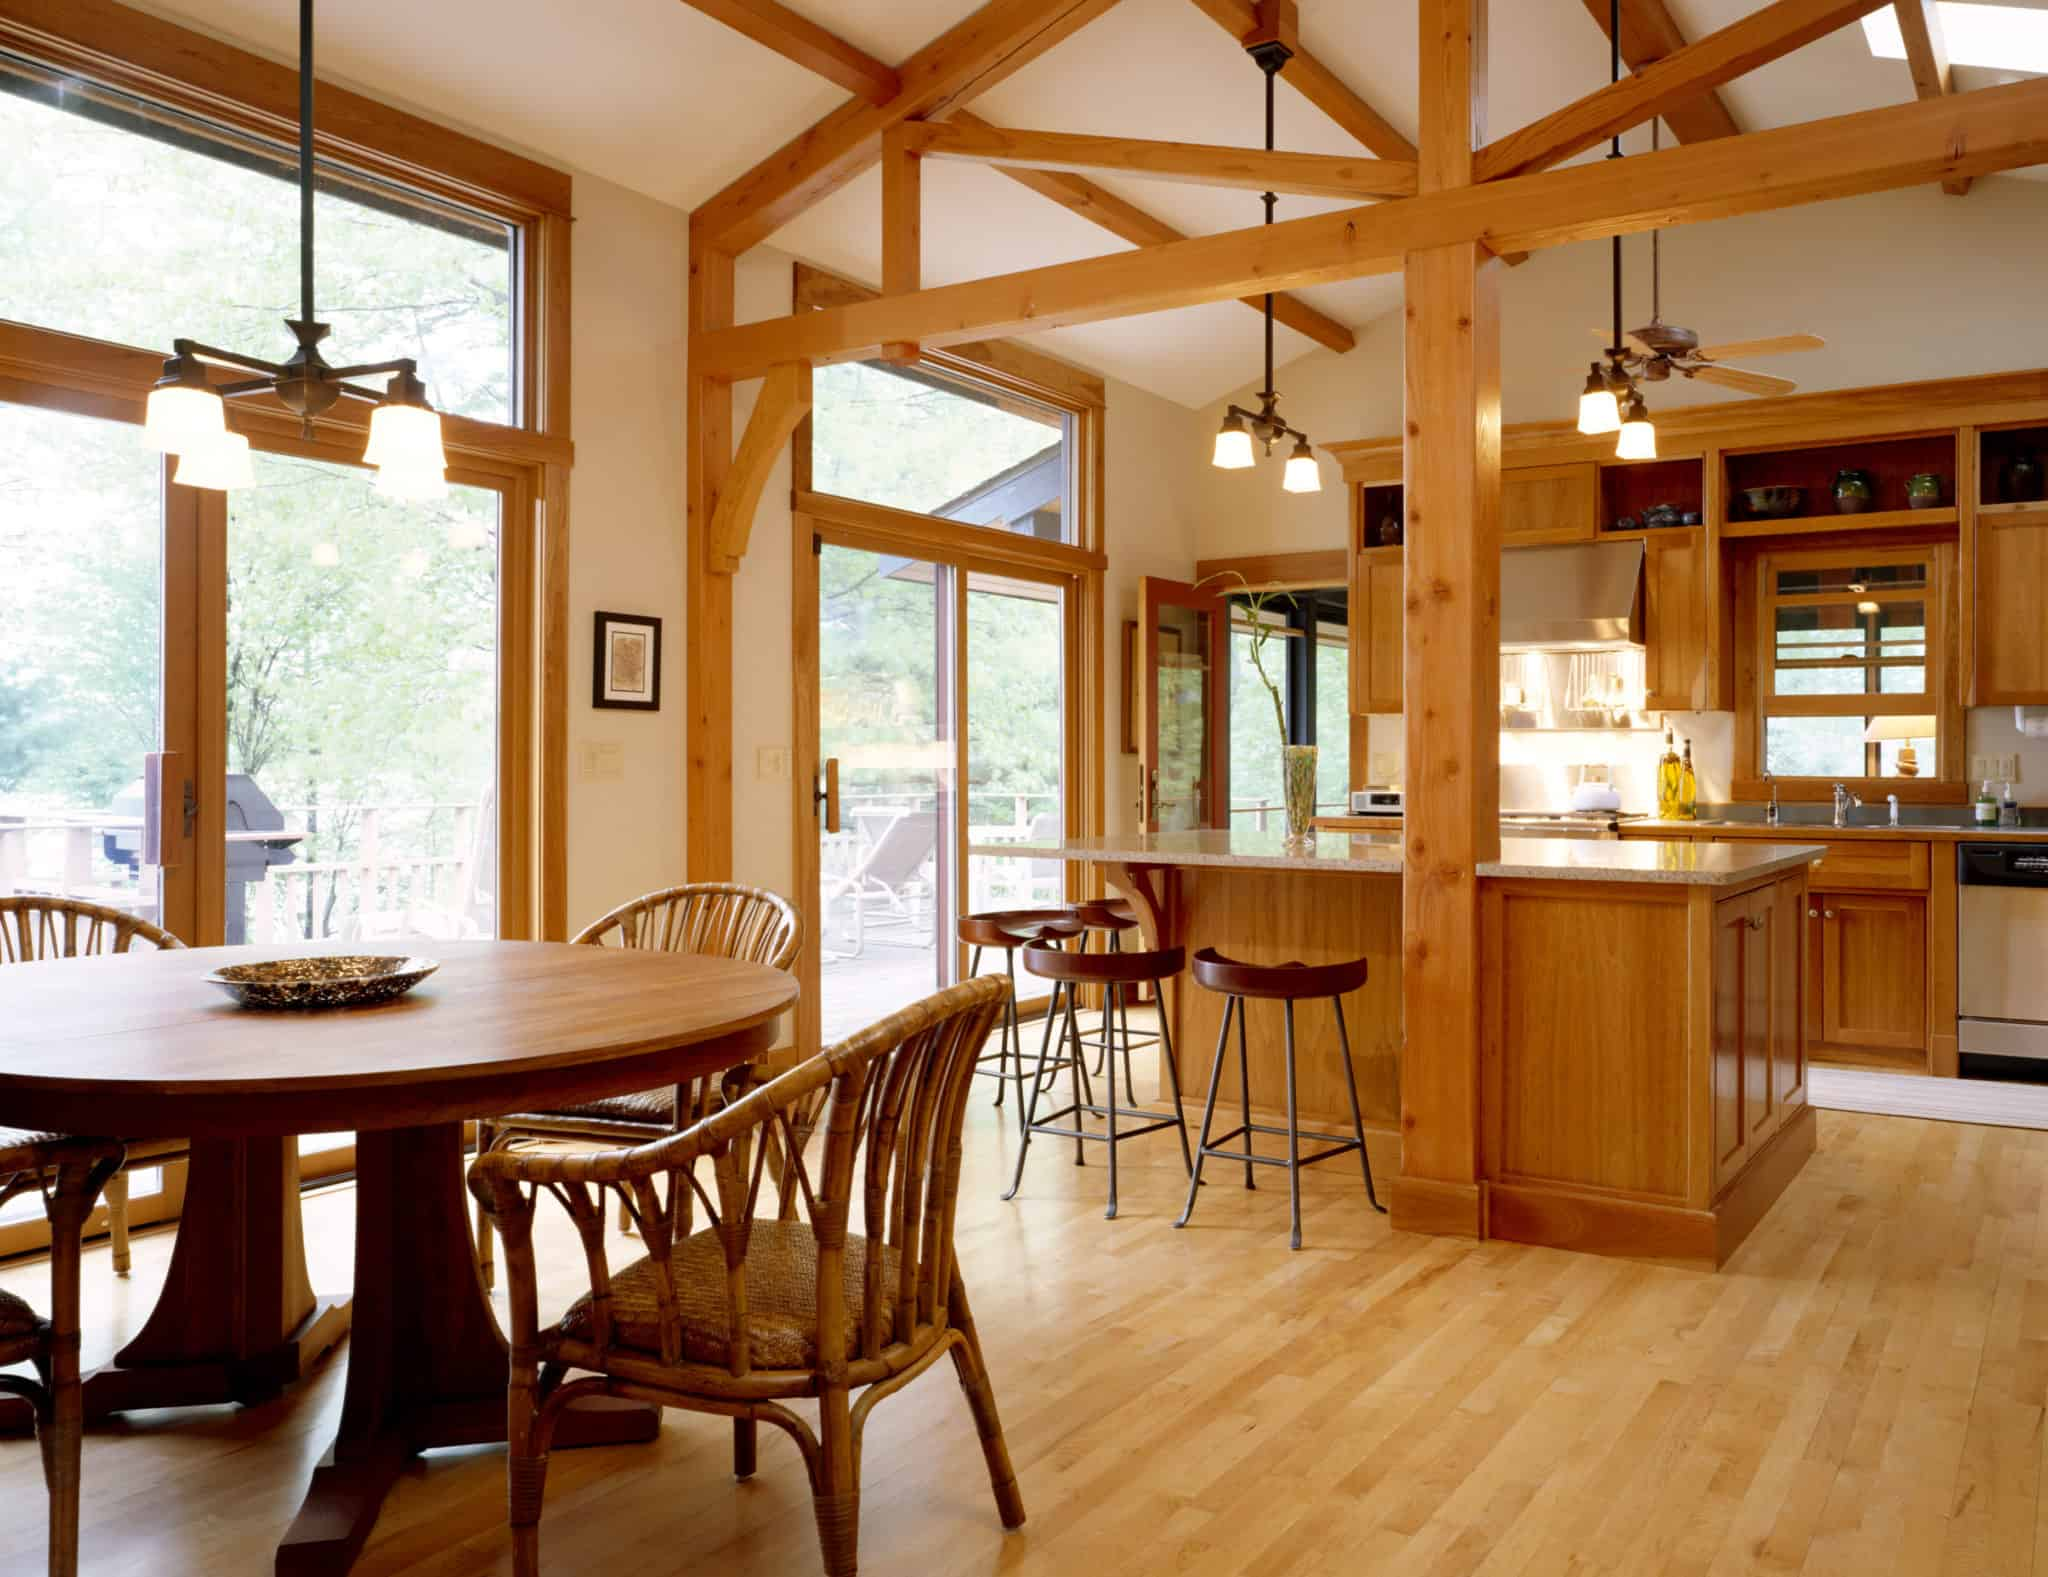 7 Ways to make your home look larger